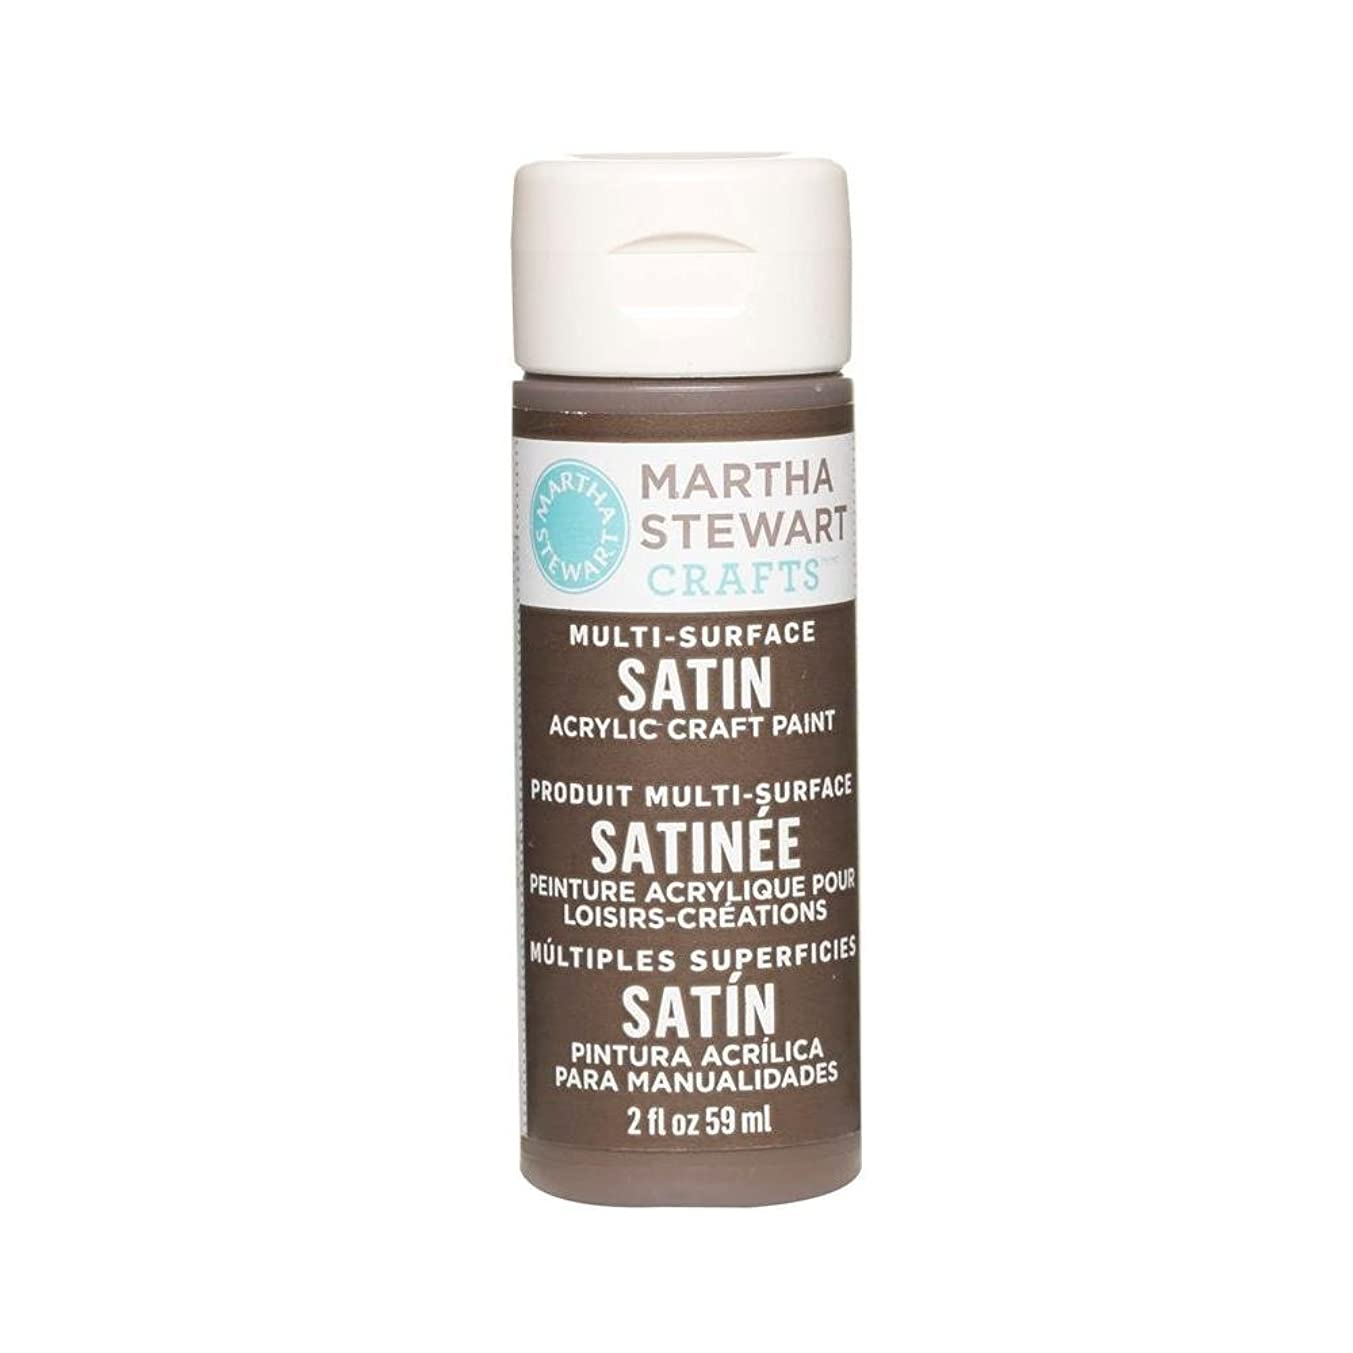 Martha Stewart Crafts Multi-Surface Satin Acrylic Craft Paint in Assorted Colors (2-Ounce), 32069 Vanilla Bean